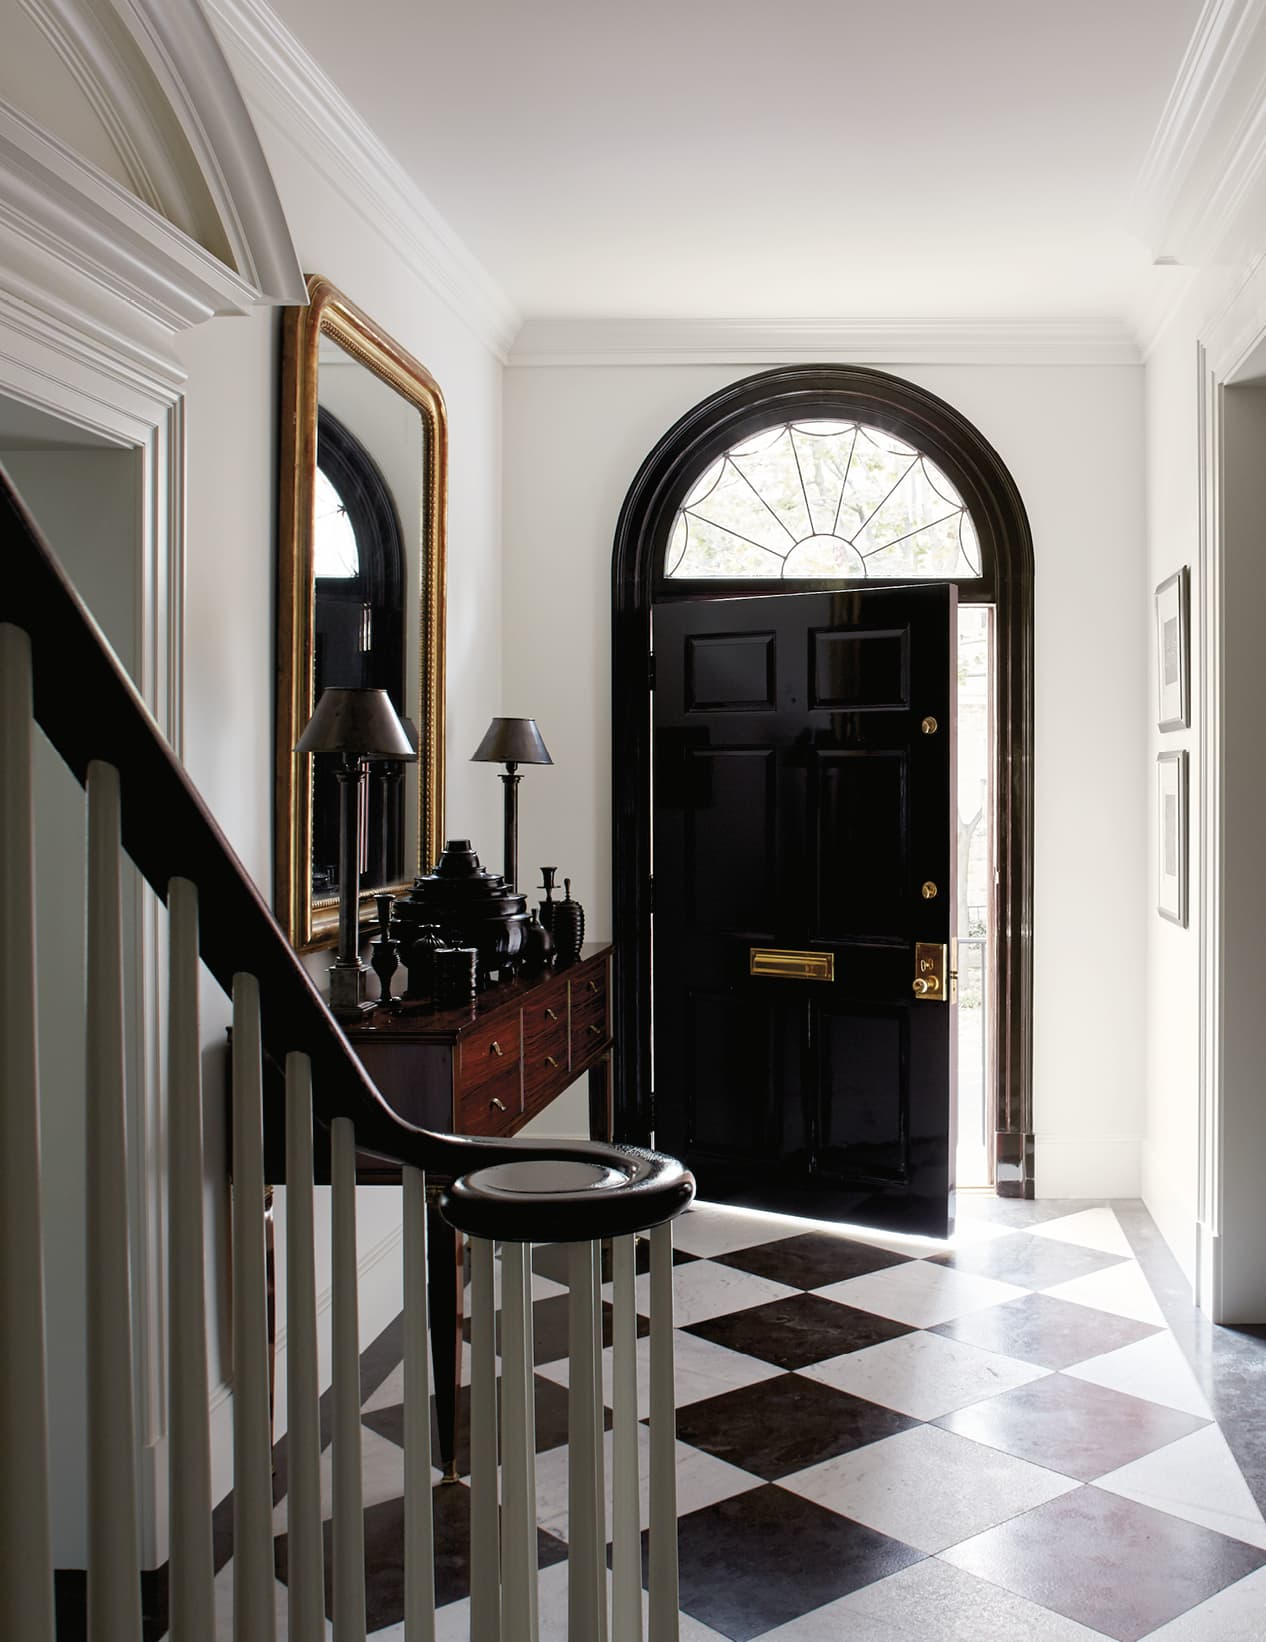 Foyer with black and white tile floor and a black door